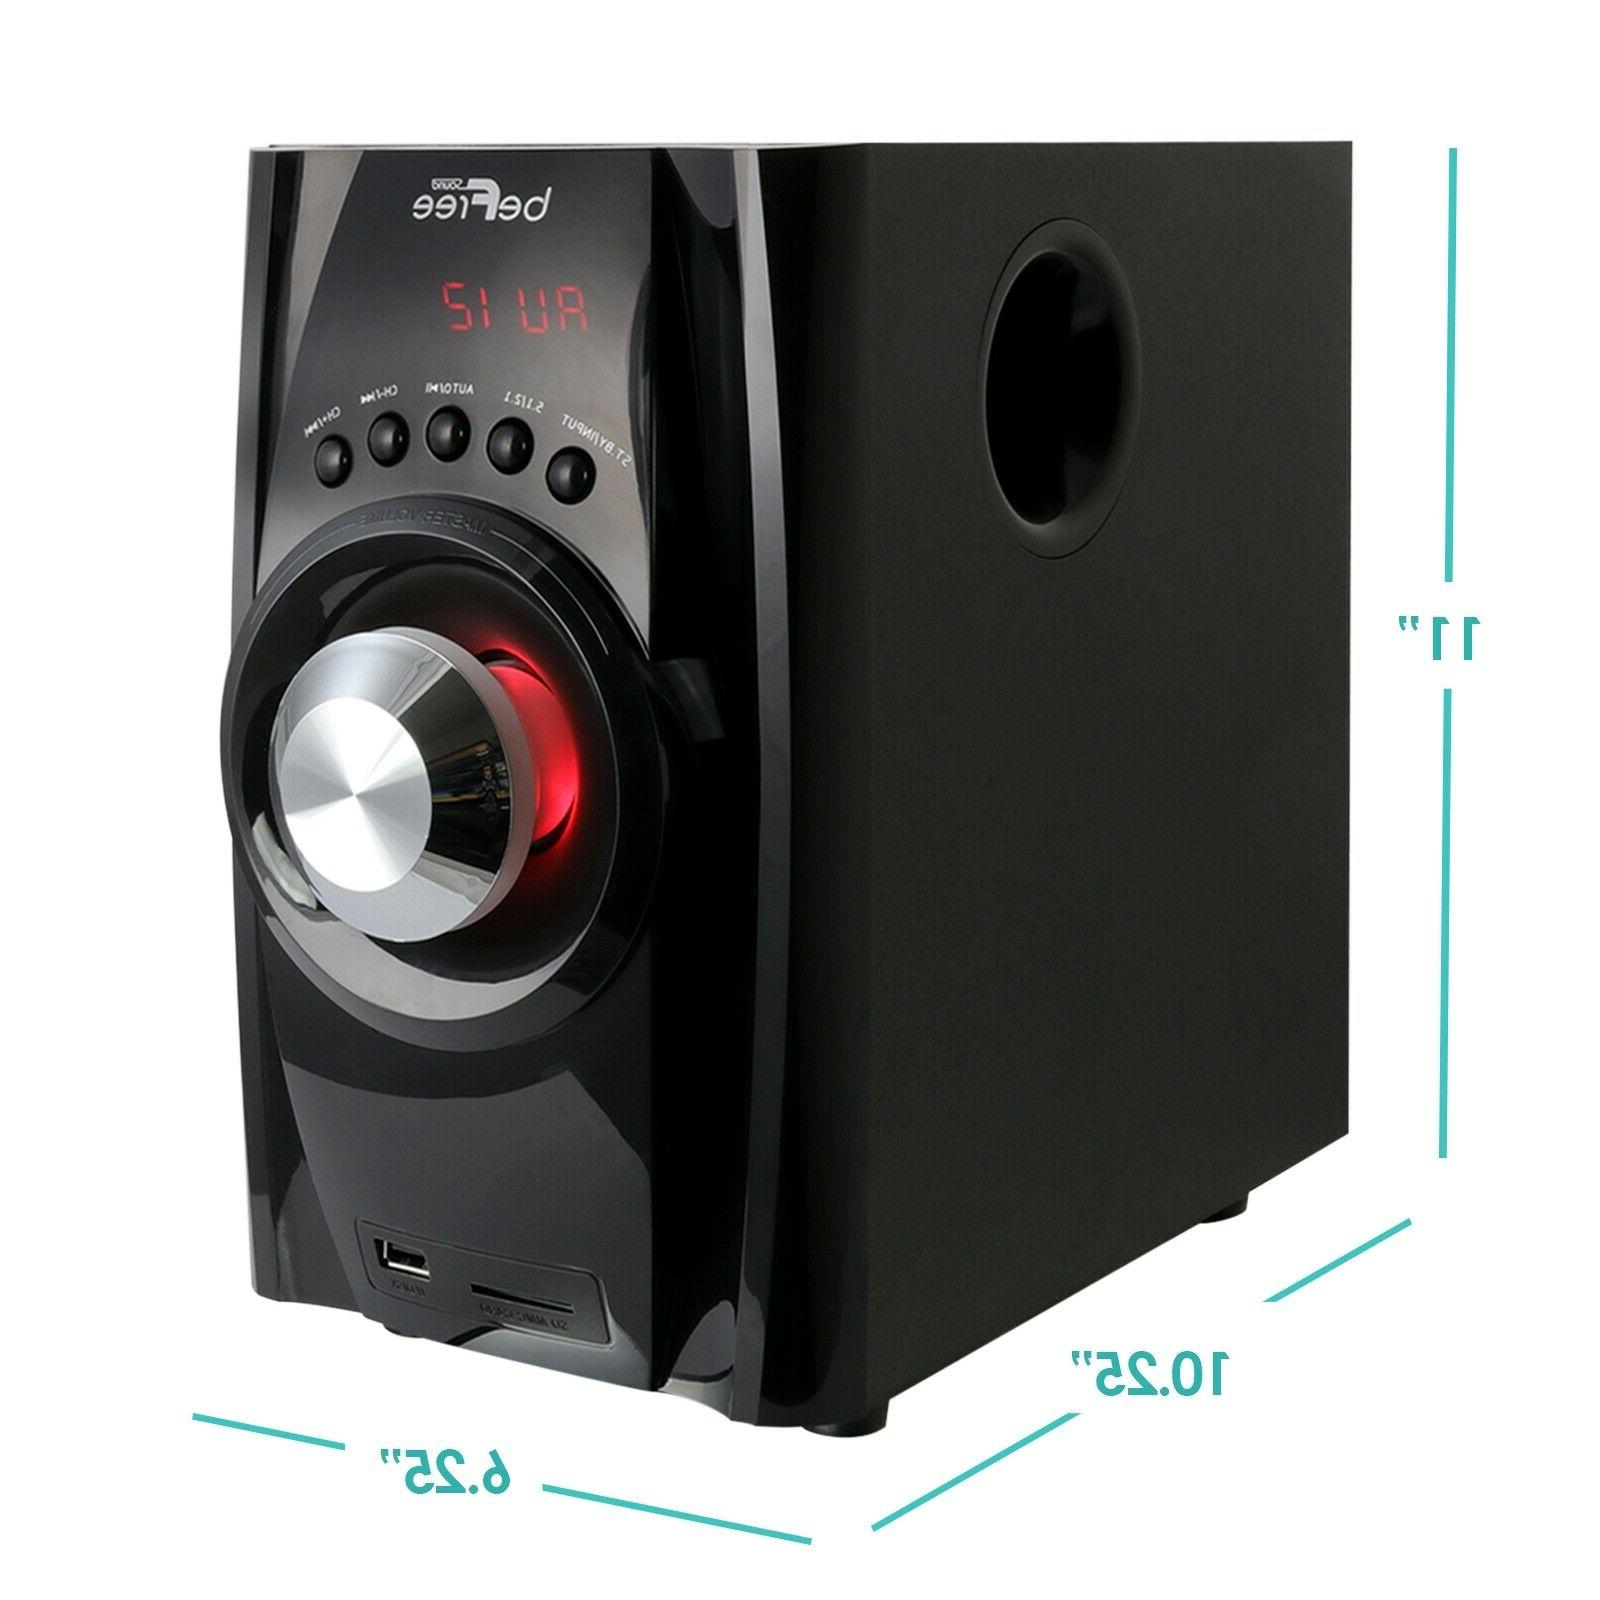 5.1 BFS-410 SURROUND SOUND SPEAKER -